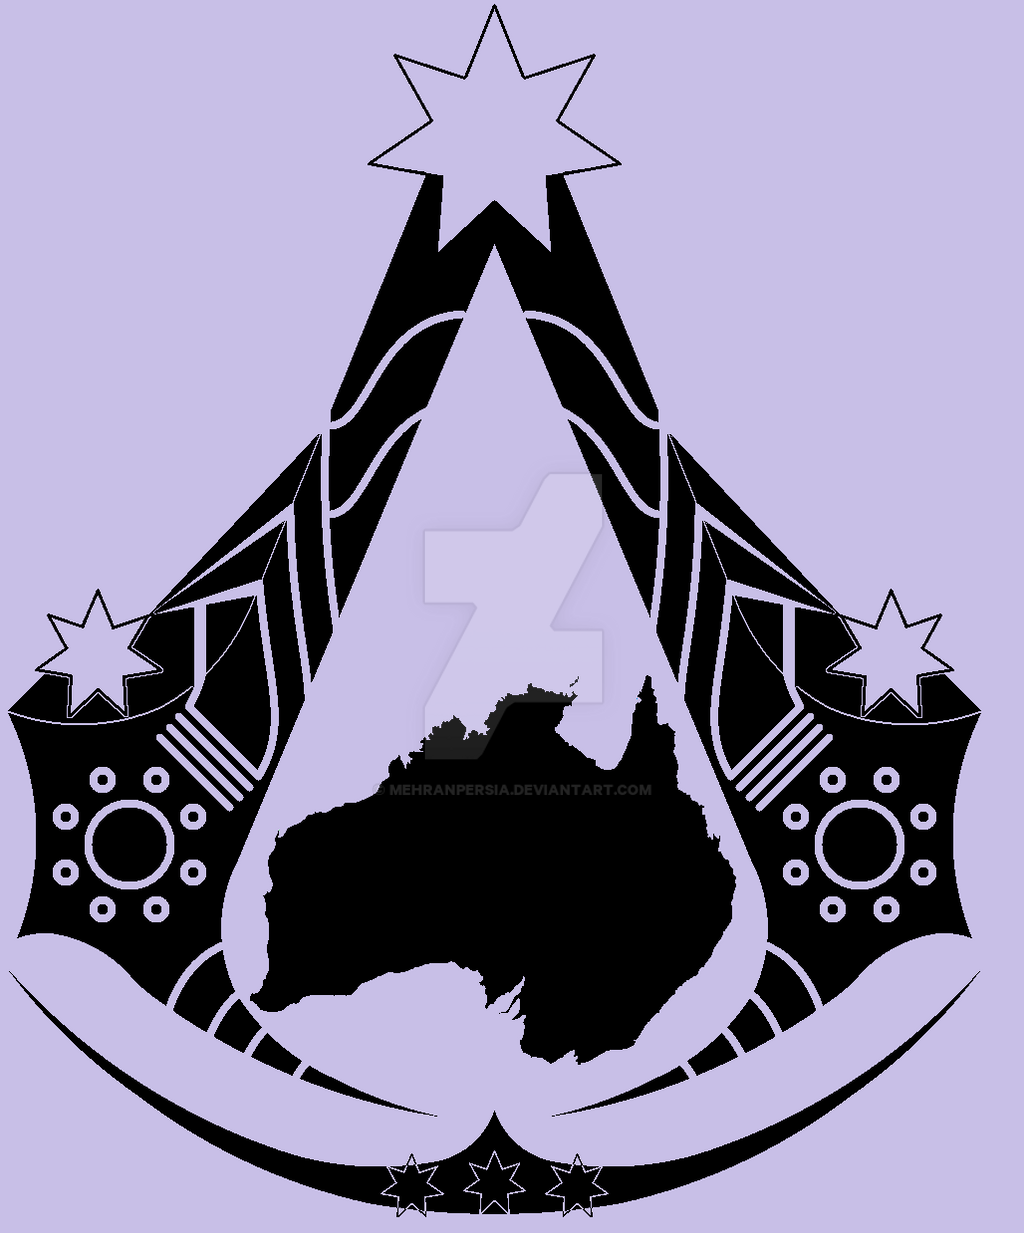 Australian assassin symbol by mehranpersia on deviantart australian assassin symbol by mehranpersia australian assassin symbol by mehranpersia biocorpaavc Images